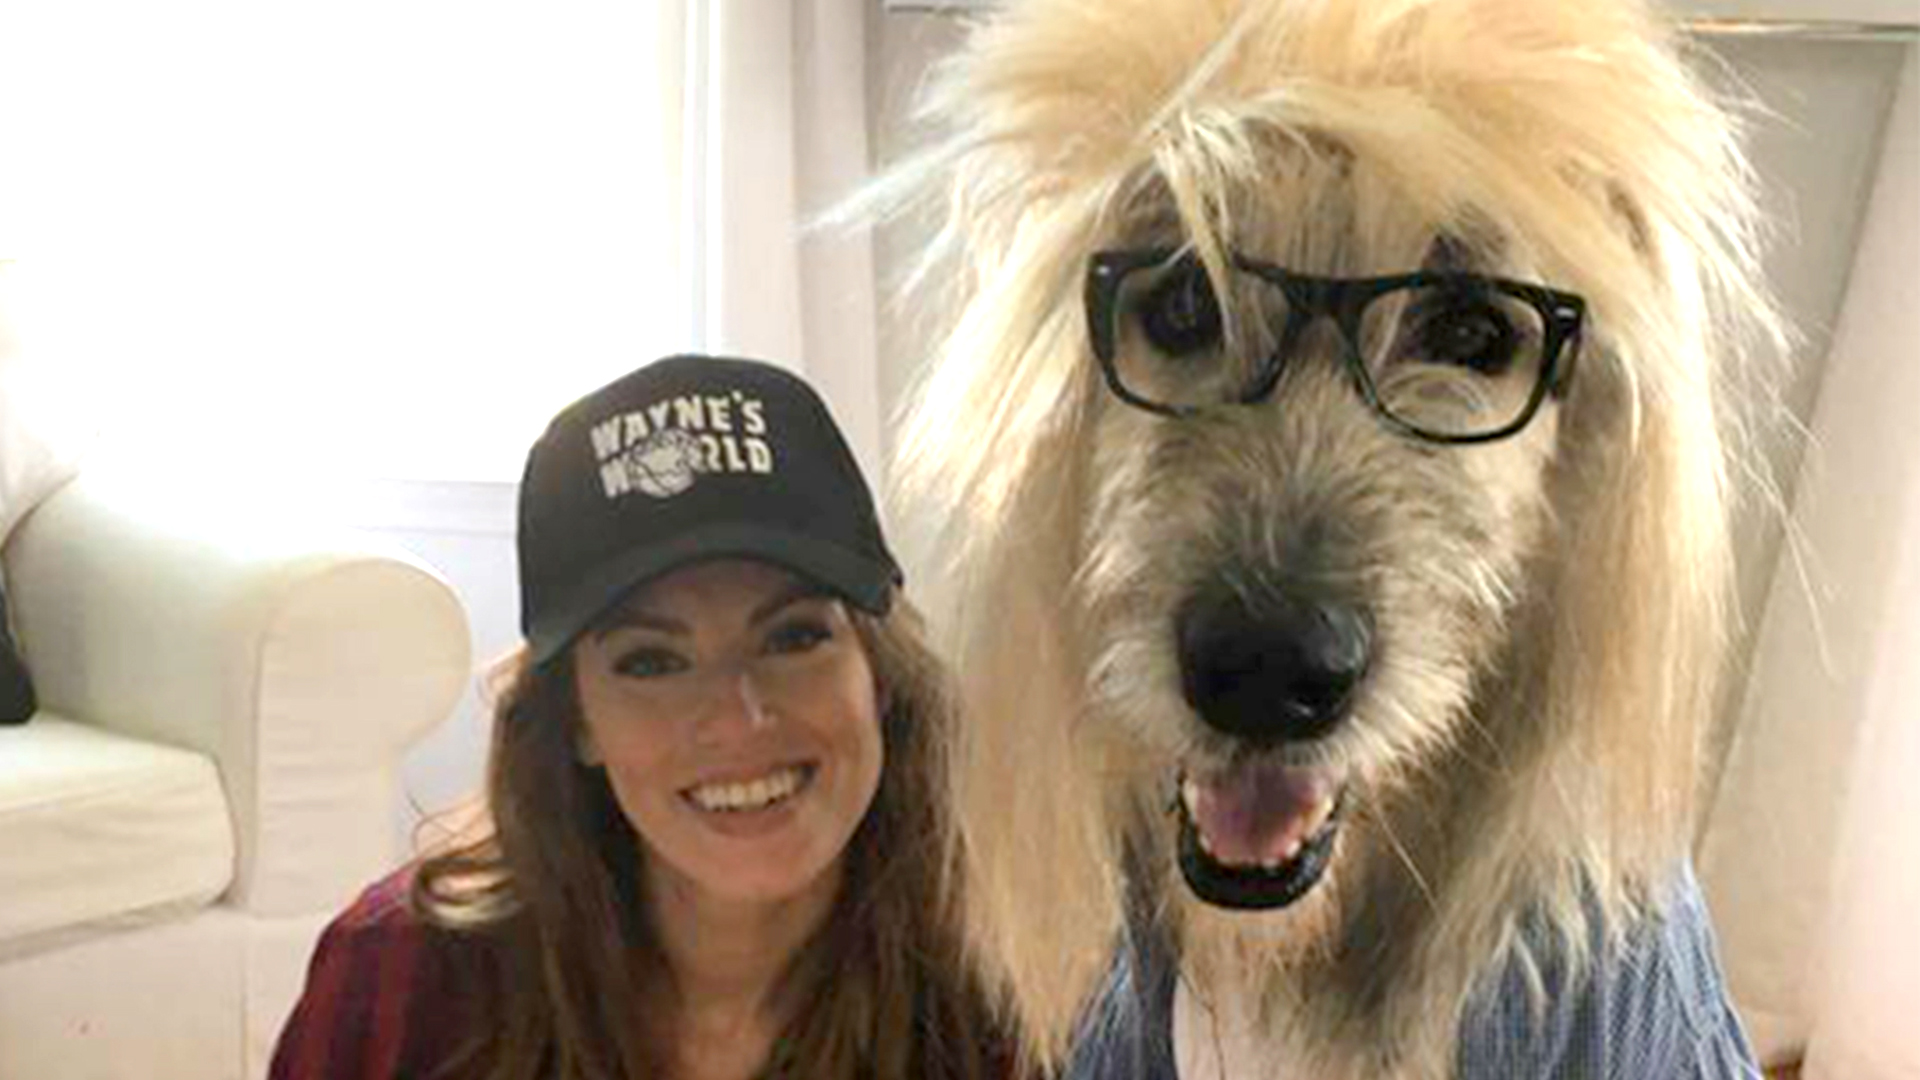 woman and dog win halloween with waynes world costume